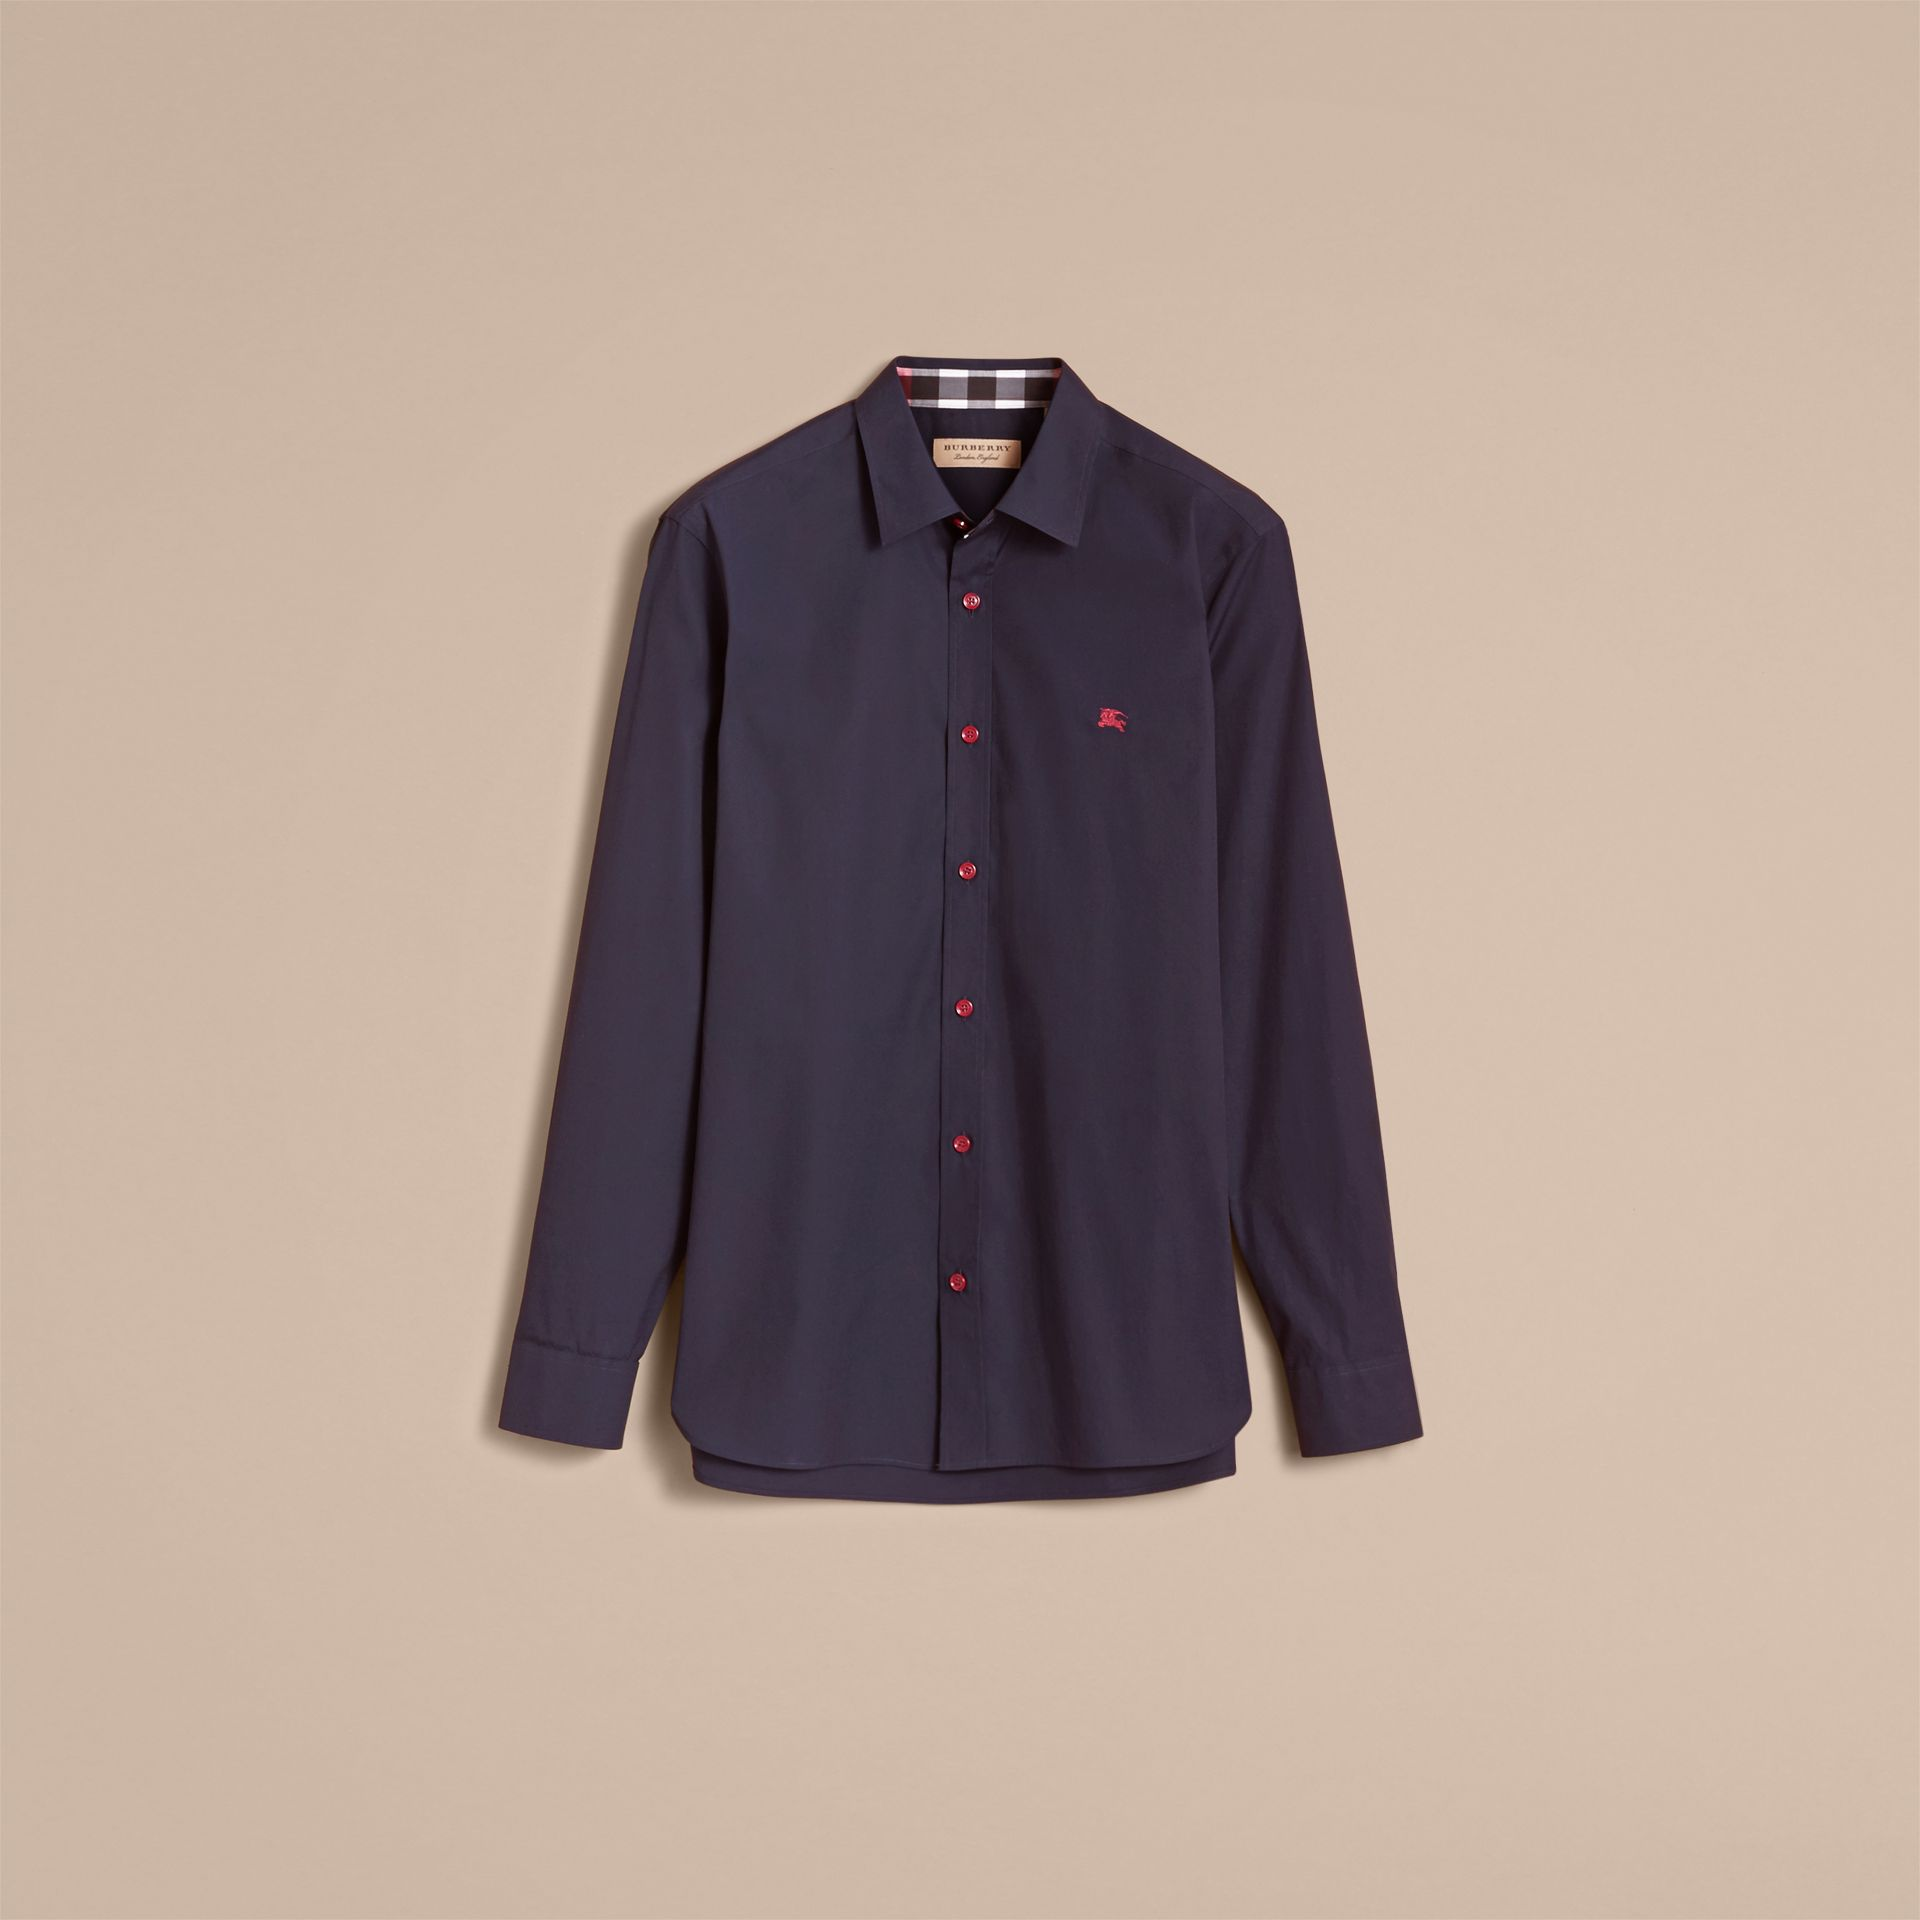 Resin Button Cotton Poplin Shirt in Navy - Men | Burberry United Kingdom - gallery image 4